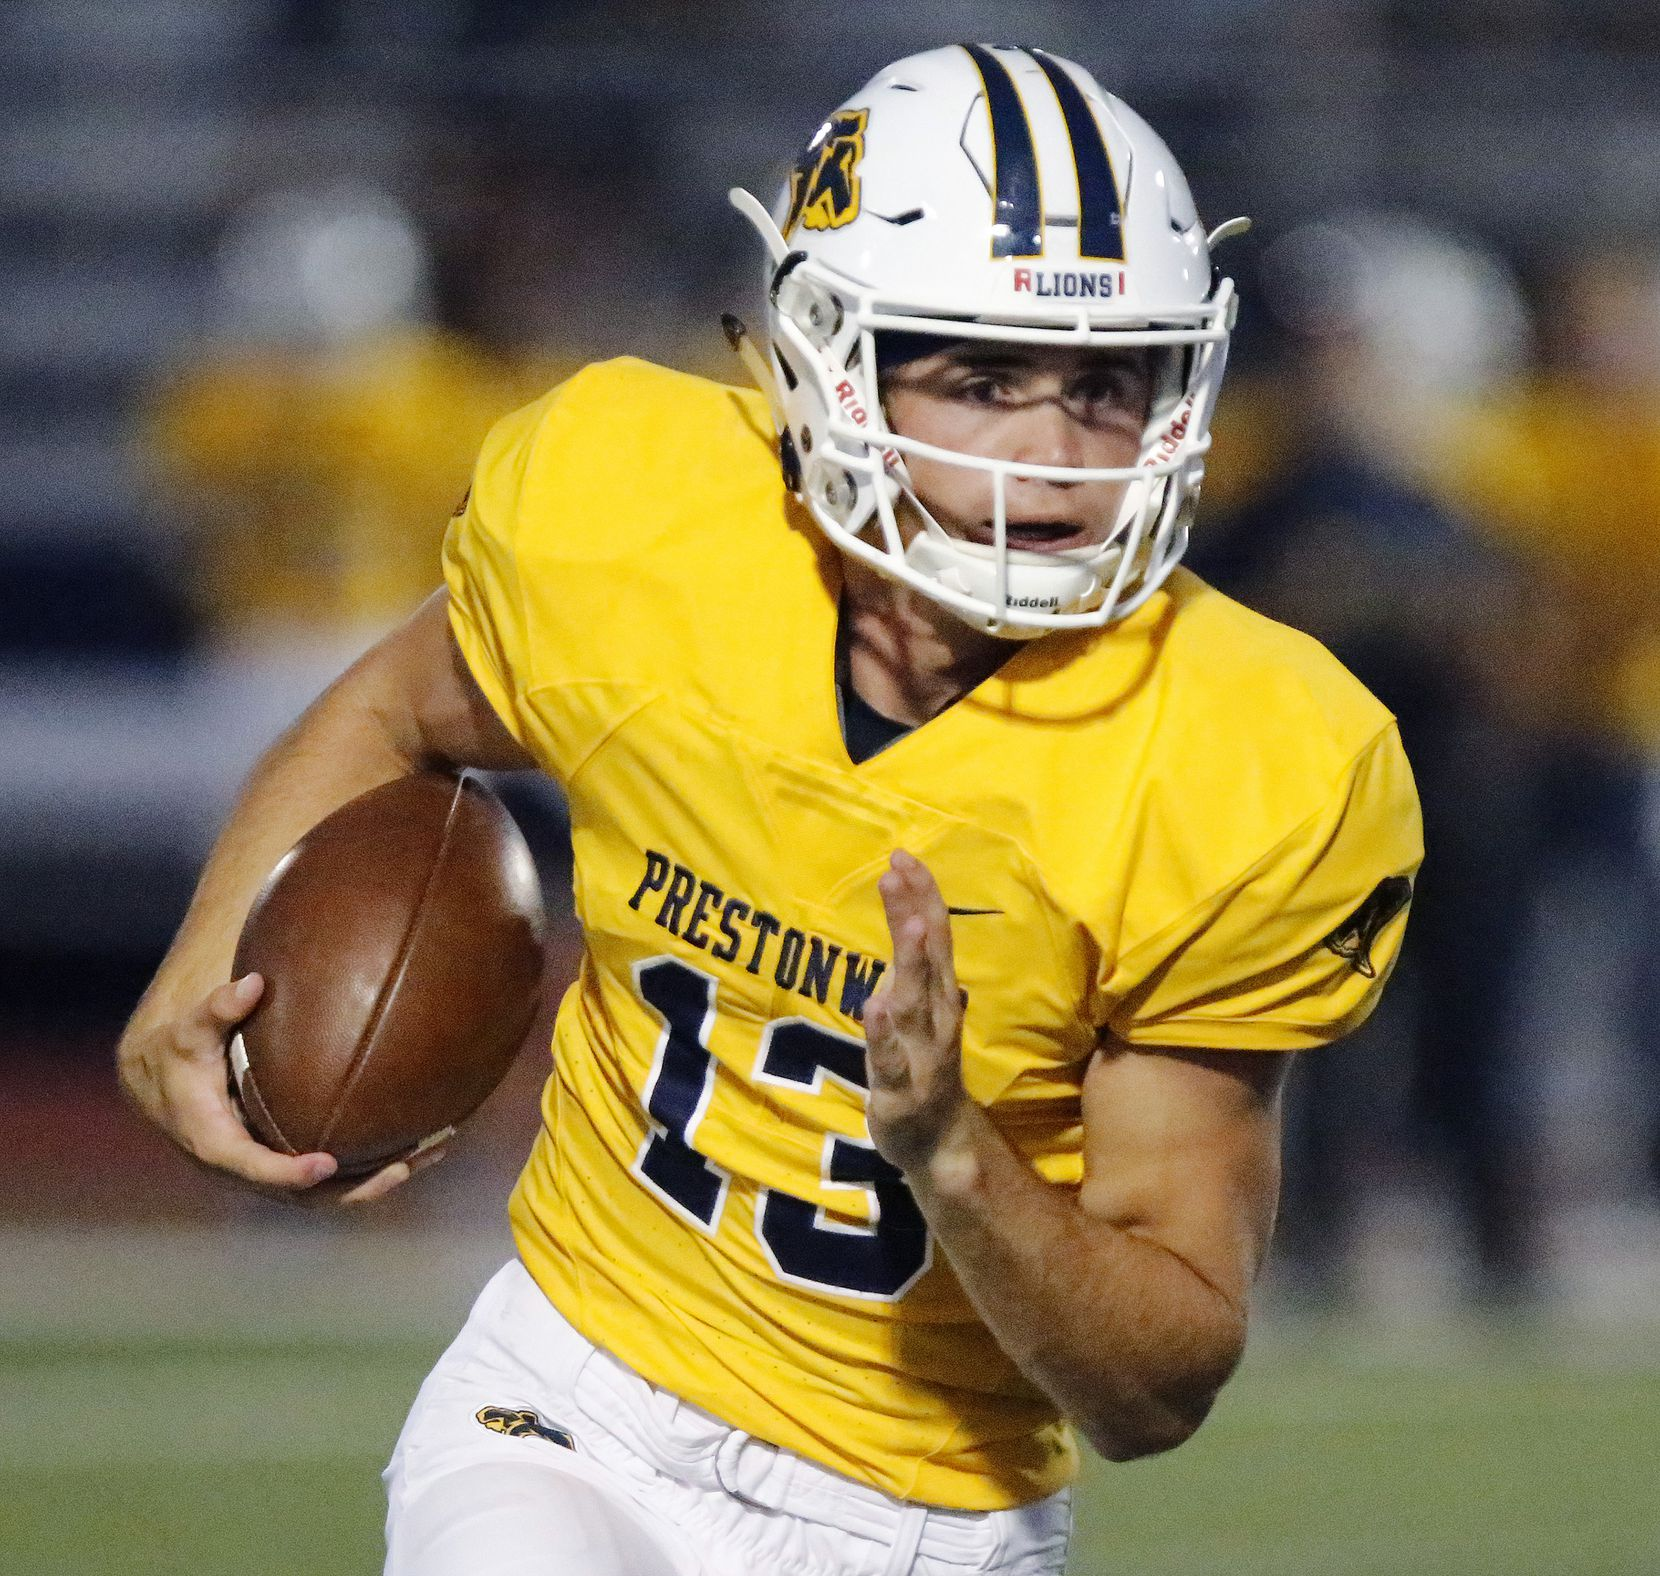 Prestonwood Christian Academy quarterback Maguire Martin (13) carries the ball during the first half as Prestonwood Christian Academy hosted Nolan Catholic High School at Lions Stadium in Plano on Friday night, October 9, 2020. (Stewart F. House/Special Contributor)